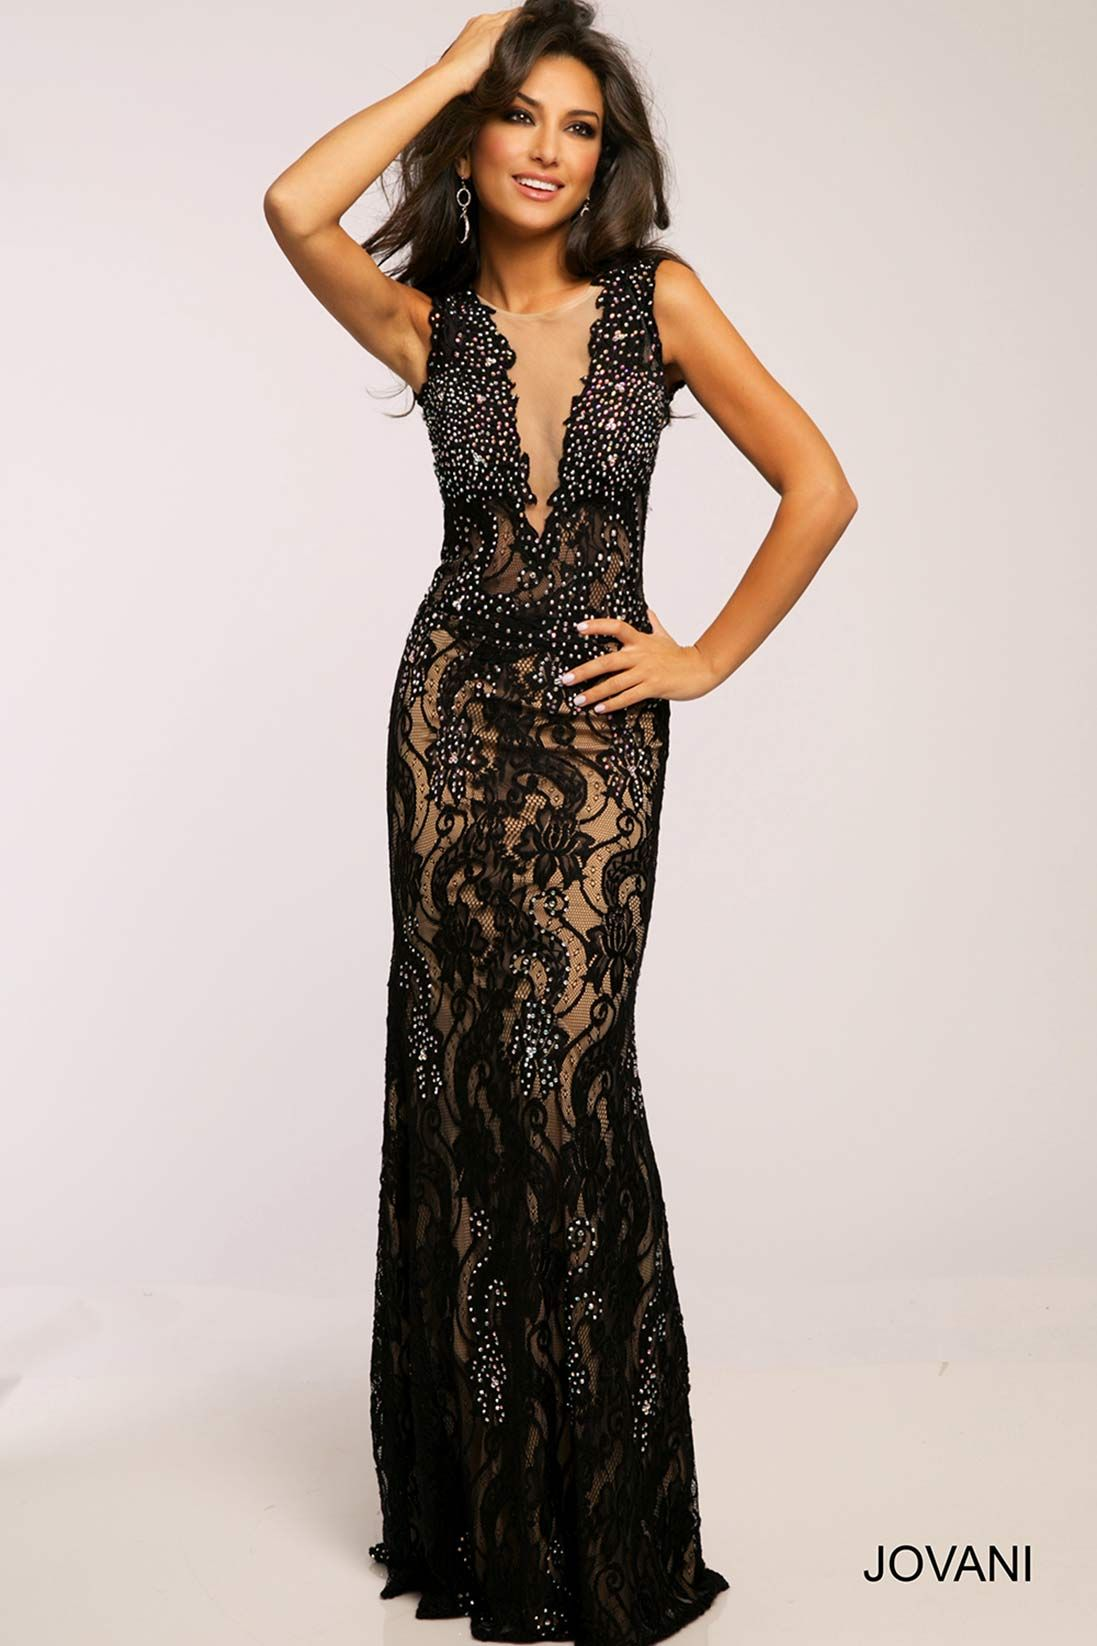 to wear - Wedding Jovani dresses with inviting beautiful pictures video